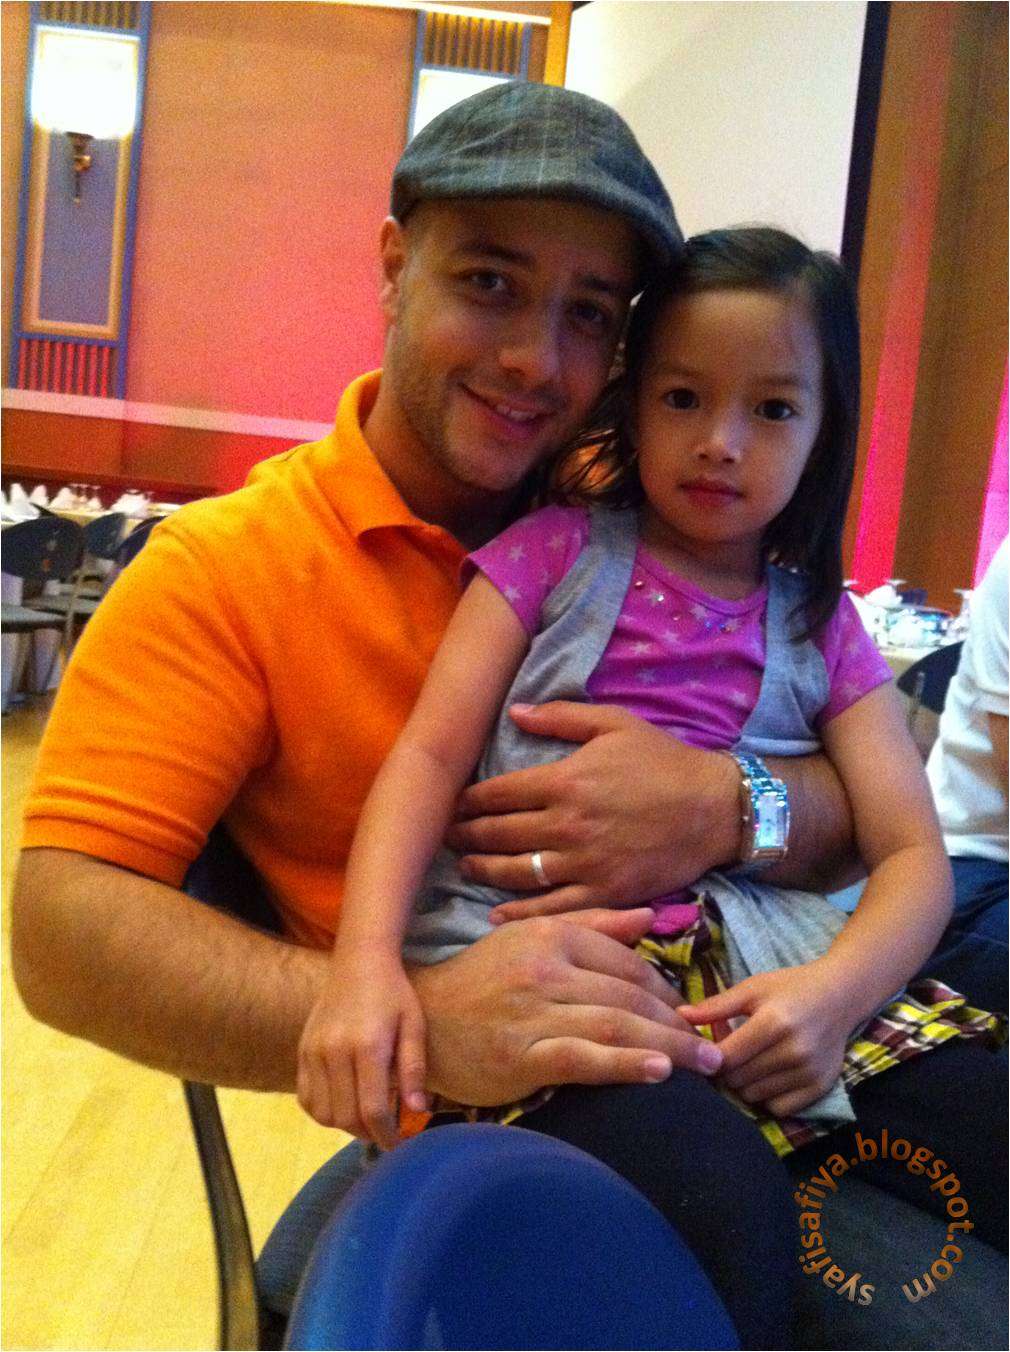 Maher Zain With His Wife And Daughter http://syafisafiya.blogspot.com/2011/07/too-good-to-be-true.html